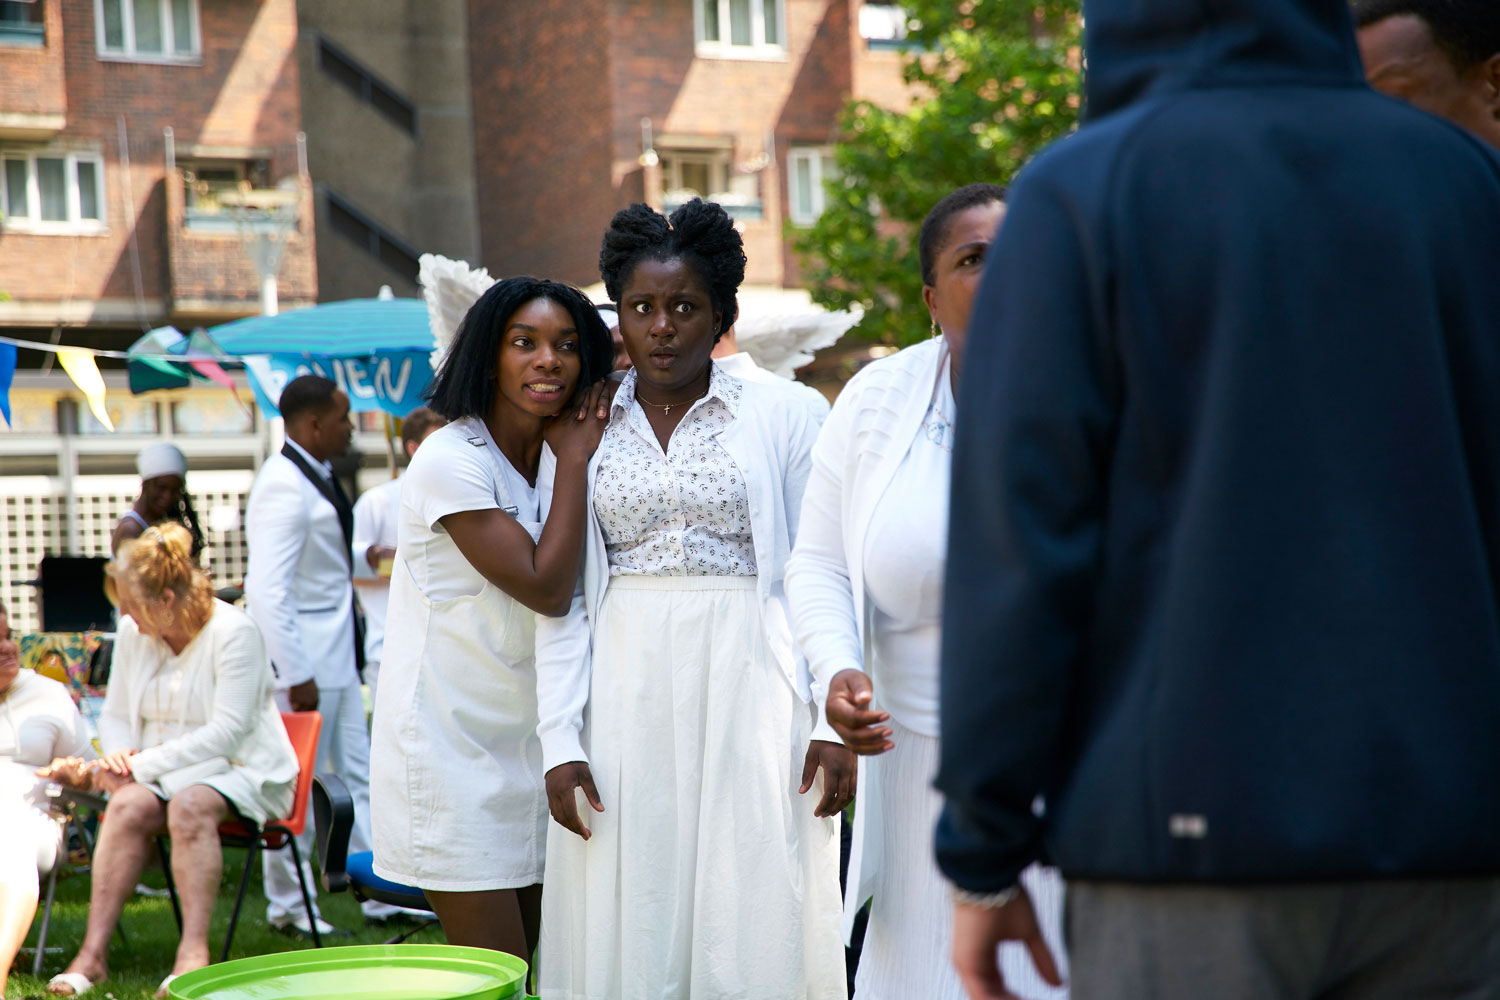 Susan Wokoma, with Michaela Coel (left) in a production still from  Chewing Gum . Courtesy of E4.